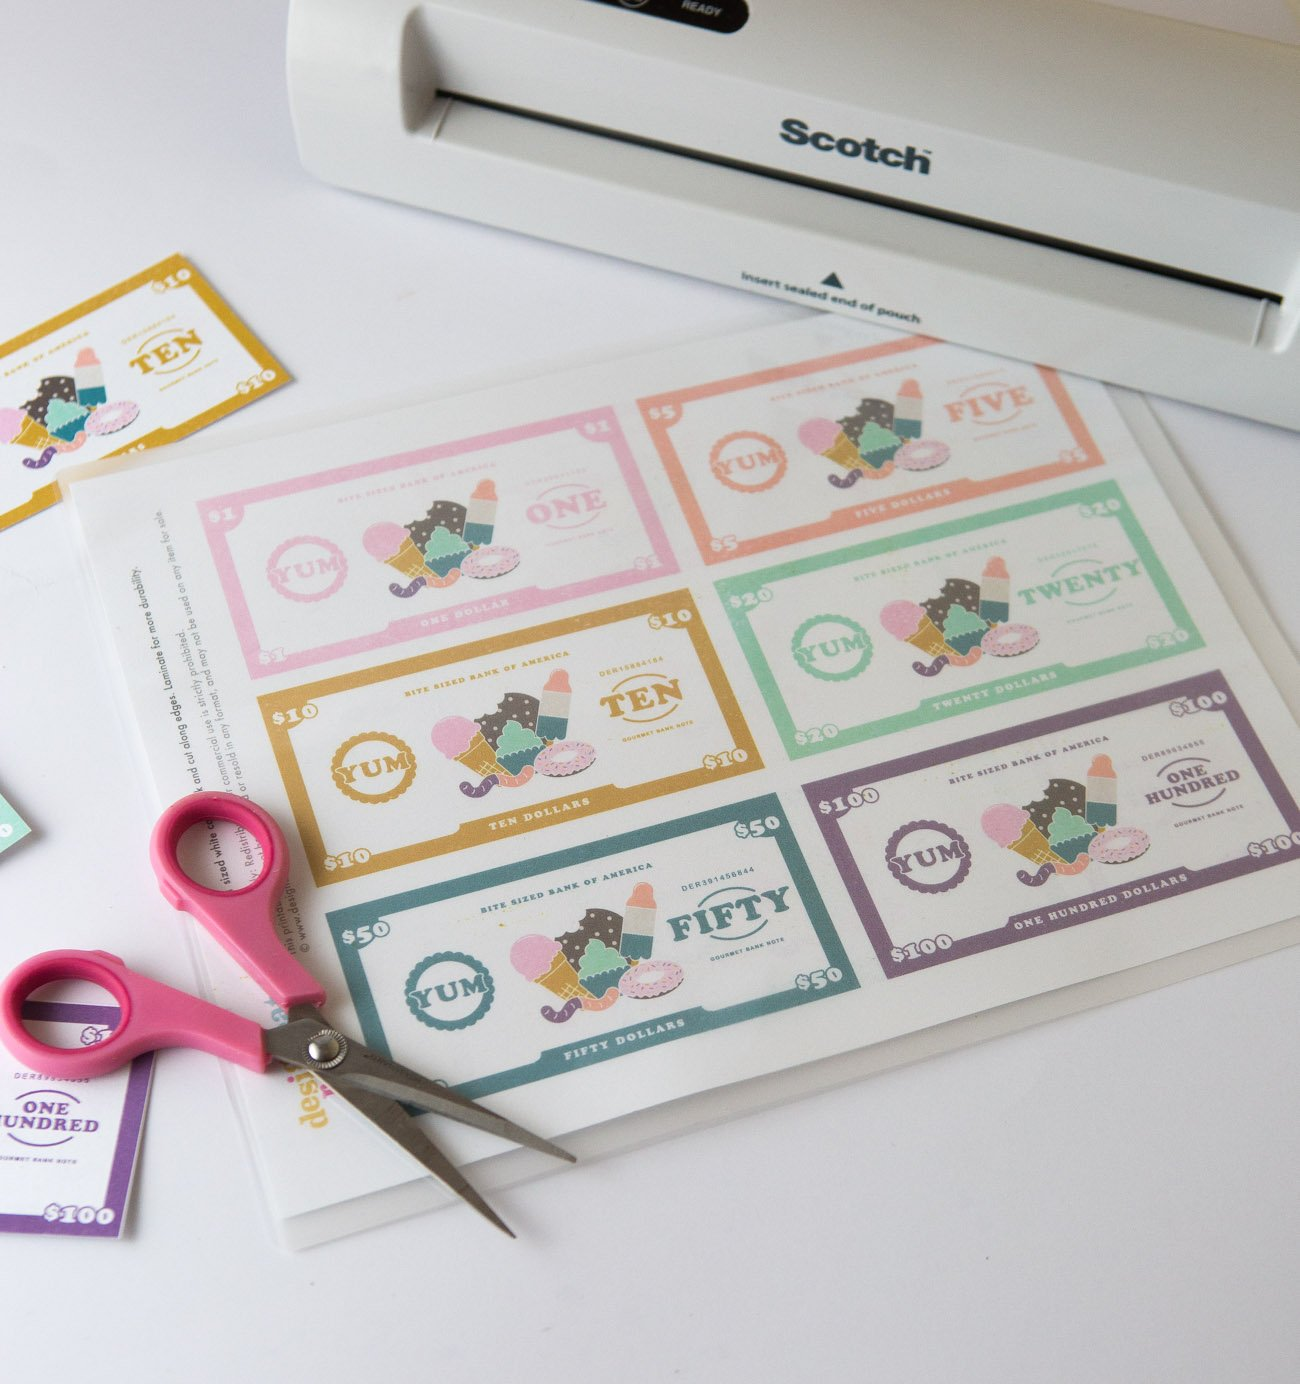 Laminate dessert themed free printable play money for kids, $1, $5, $10, $20, $50, $100